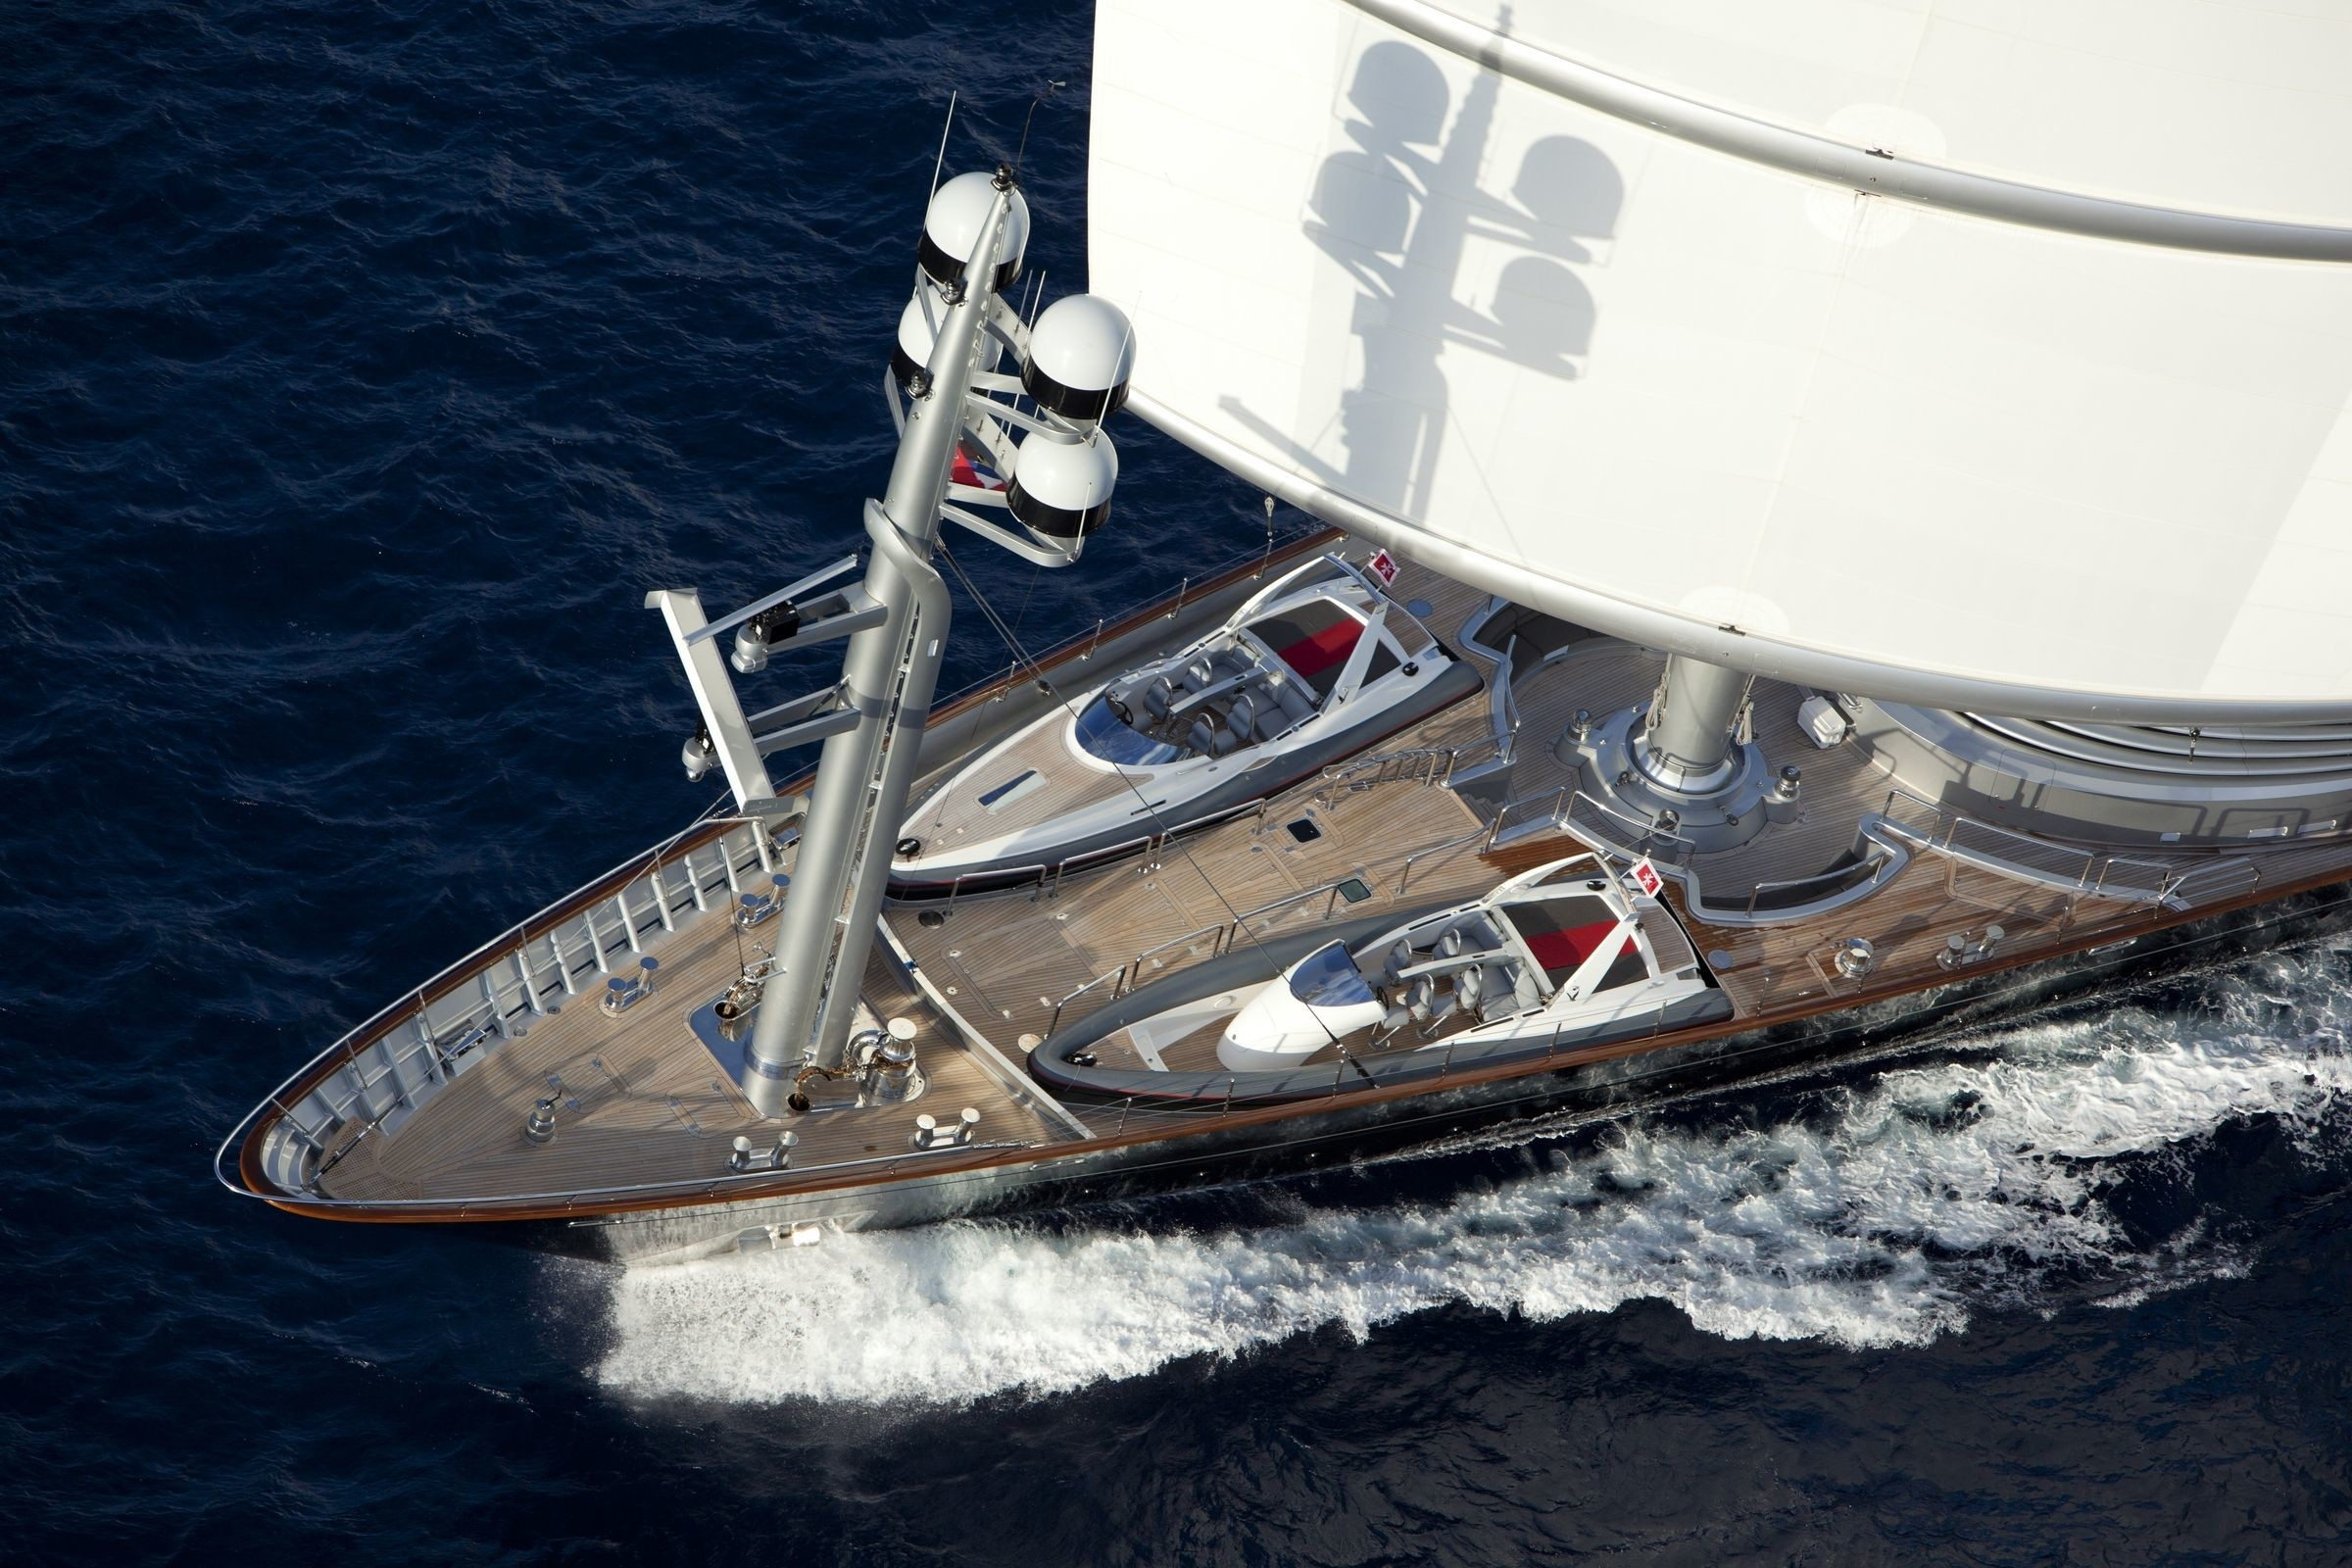 Ship's Bow: Yacht MALTESE FALCON's Cruising Pictured